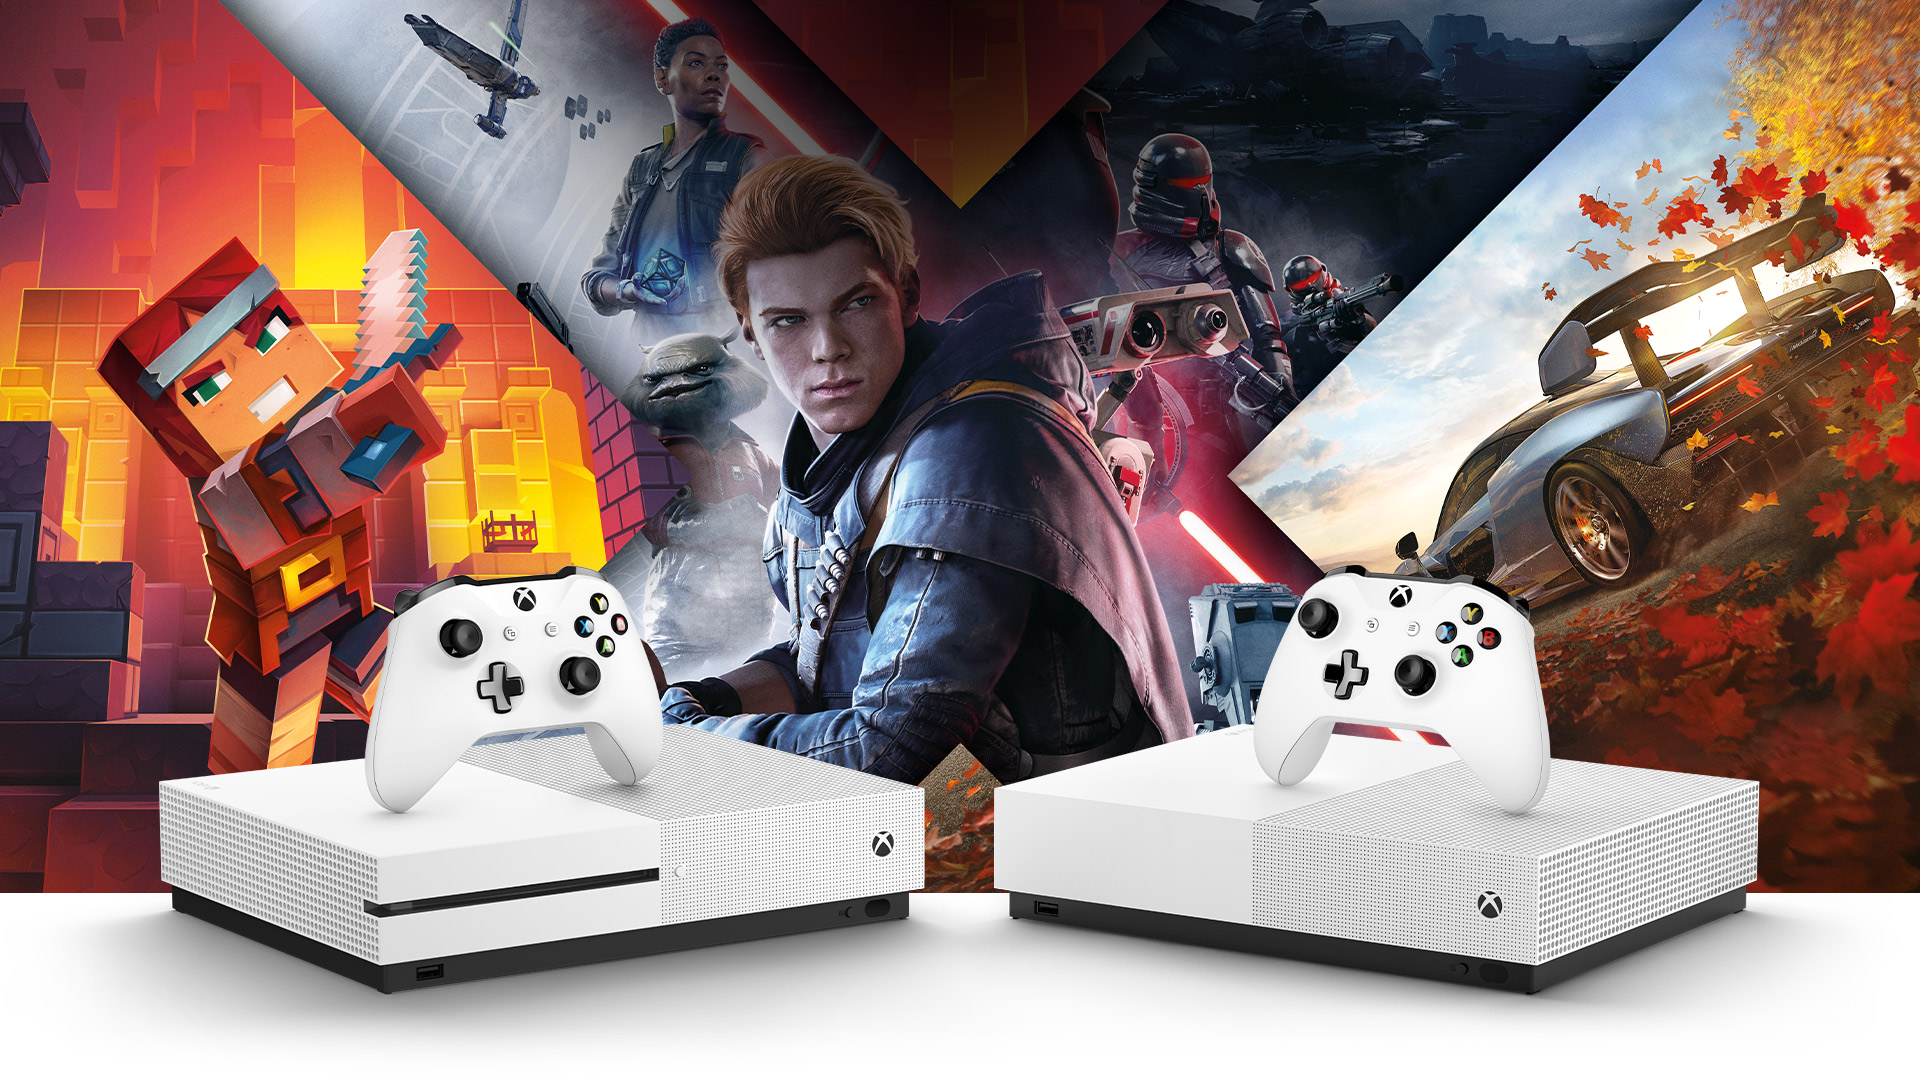 Вид спереди на Xbox One S и Xbox One S All Digital Edition в окружении иллюстраций к играм Minecraft, Forza Horizon 4, Star Wars Jedi Fallen Order